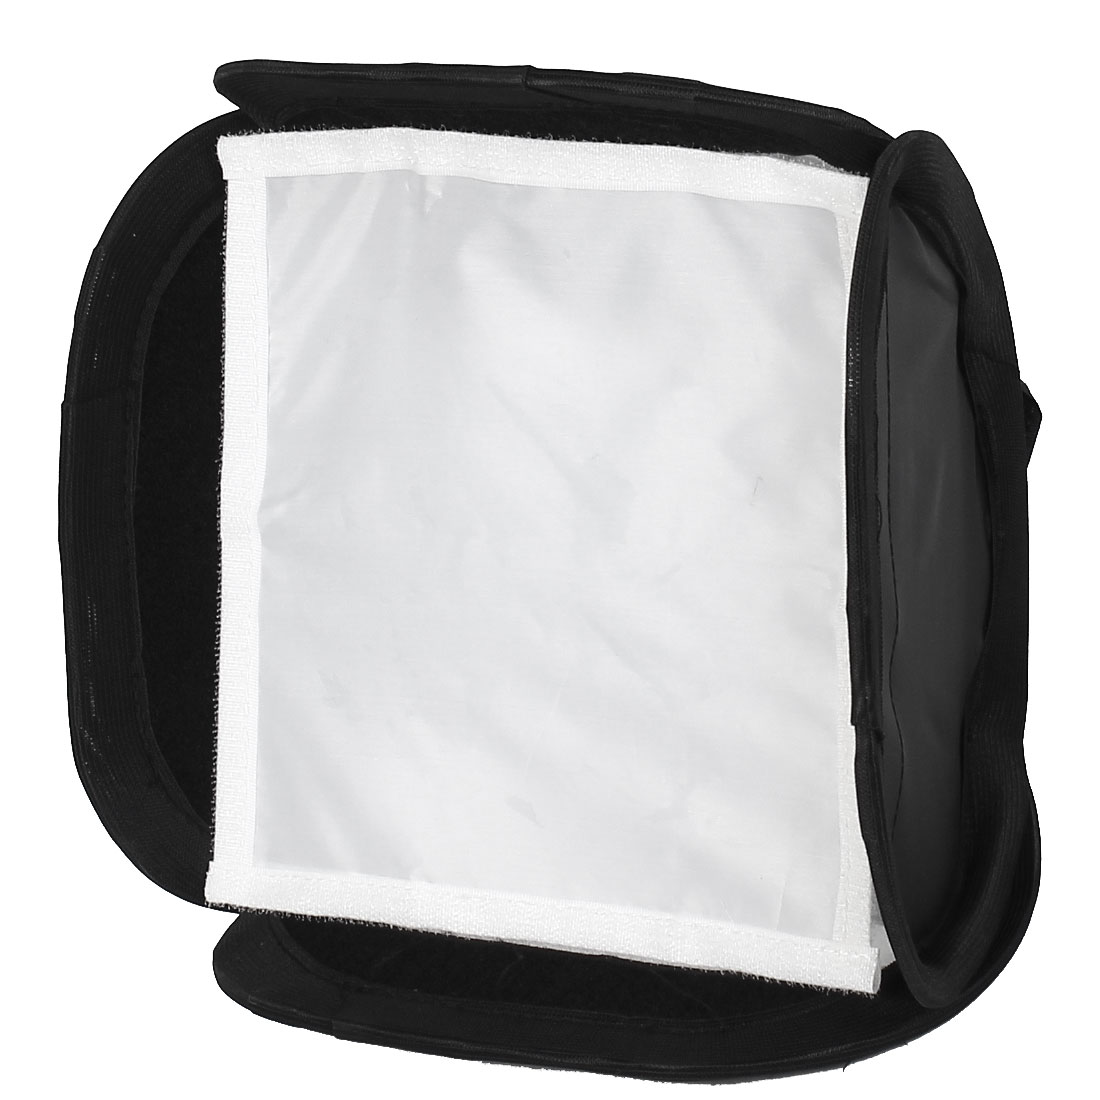 Portable 23x23cm Softbox for DSLR Camera Photo Flash Light